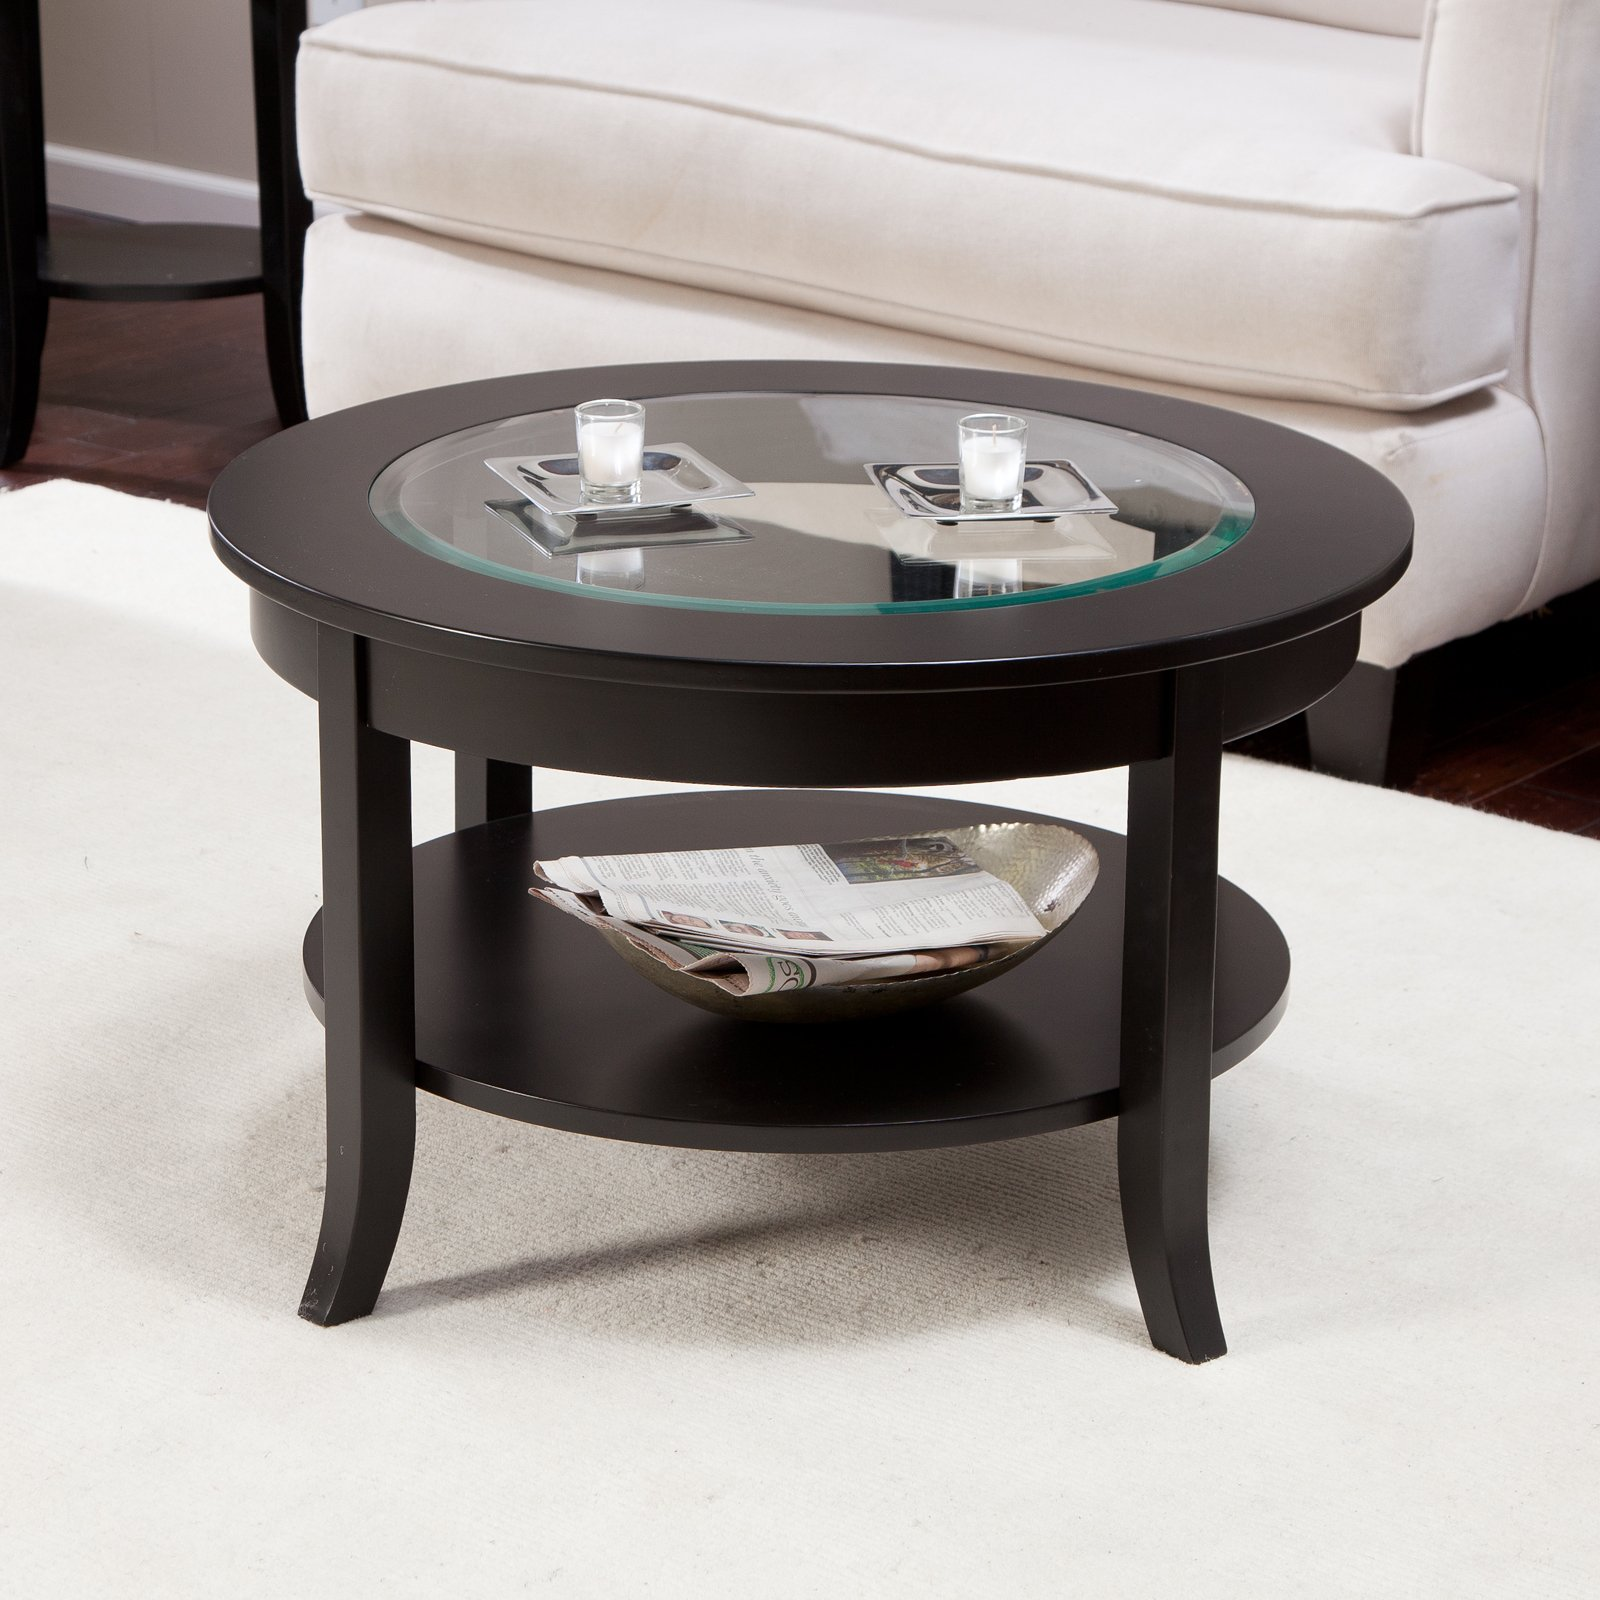 Glass Coffee Tables For Small Spaces The Outline Of It Should Be Intent On  The Furniture